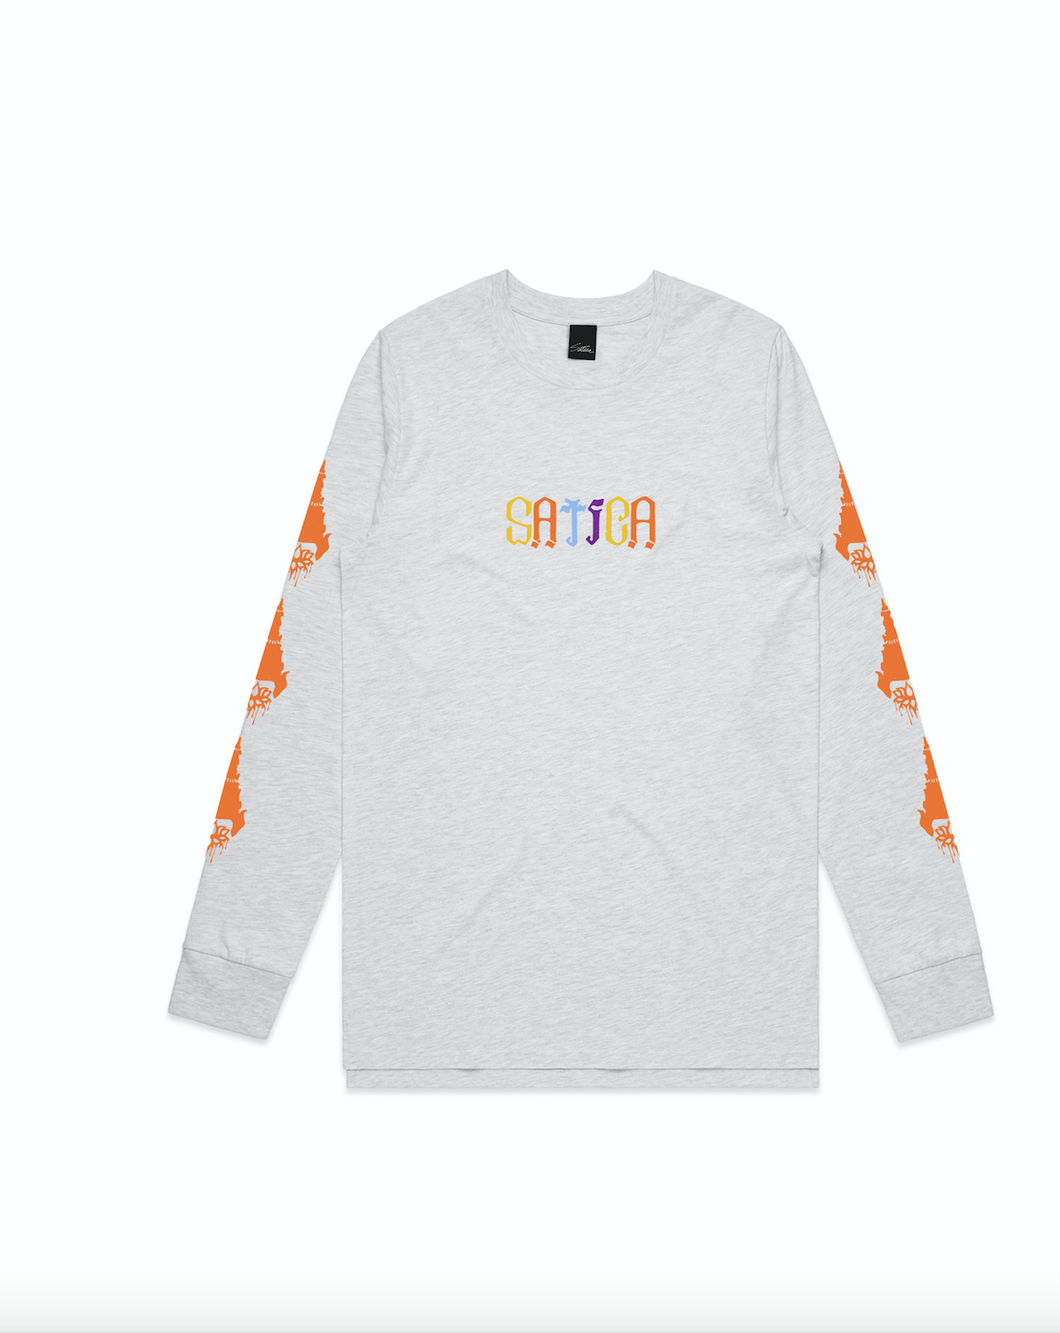 Satica Long Sleeve